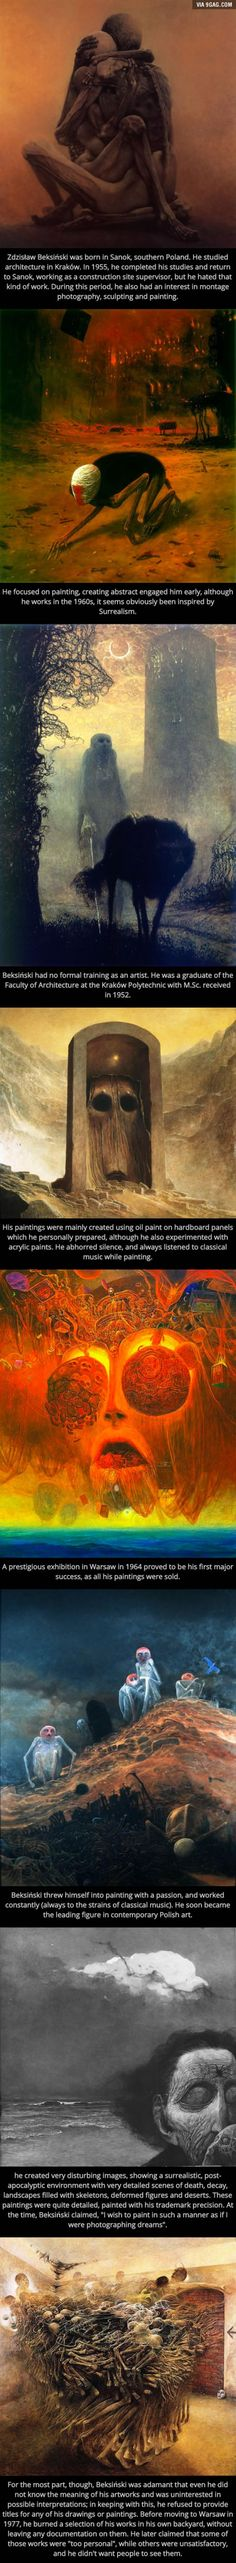 The Beautiful and Horrific Artwork of Zdzisław Beksiński